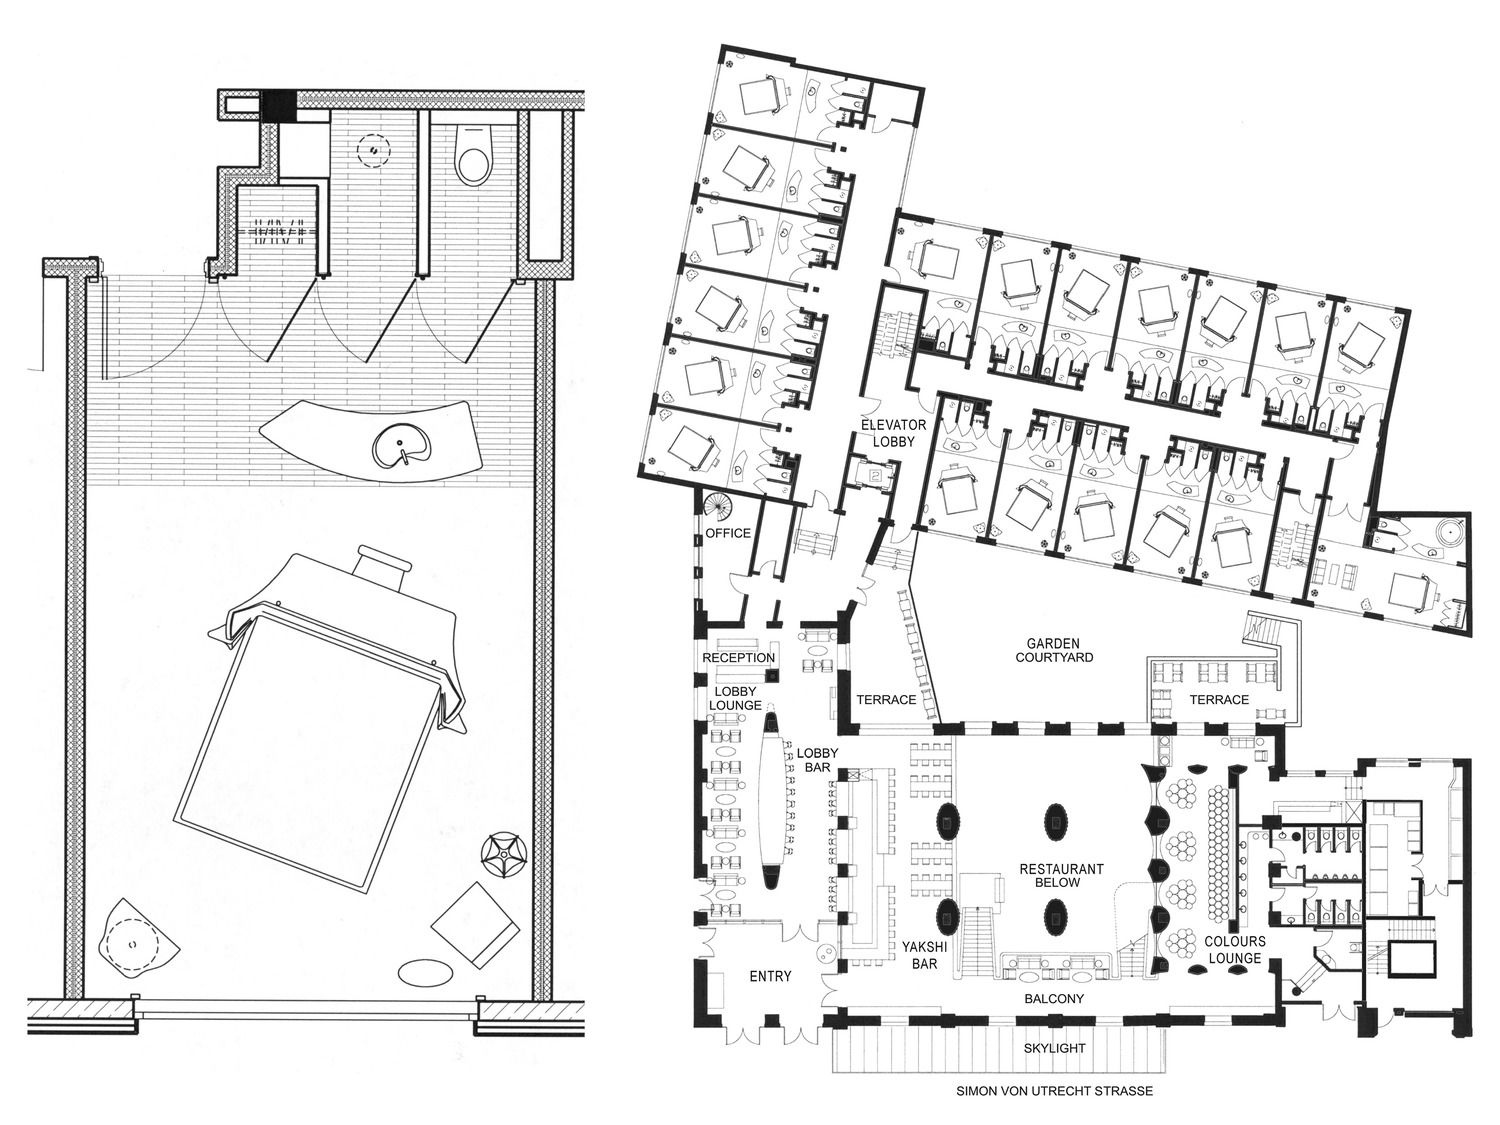 East Hotel Hamburg East Hotel Hamburg, Germany | Hotel Plan, Edition Hotel, Room Layout Design